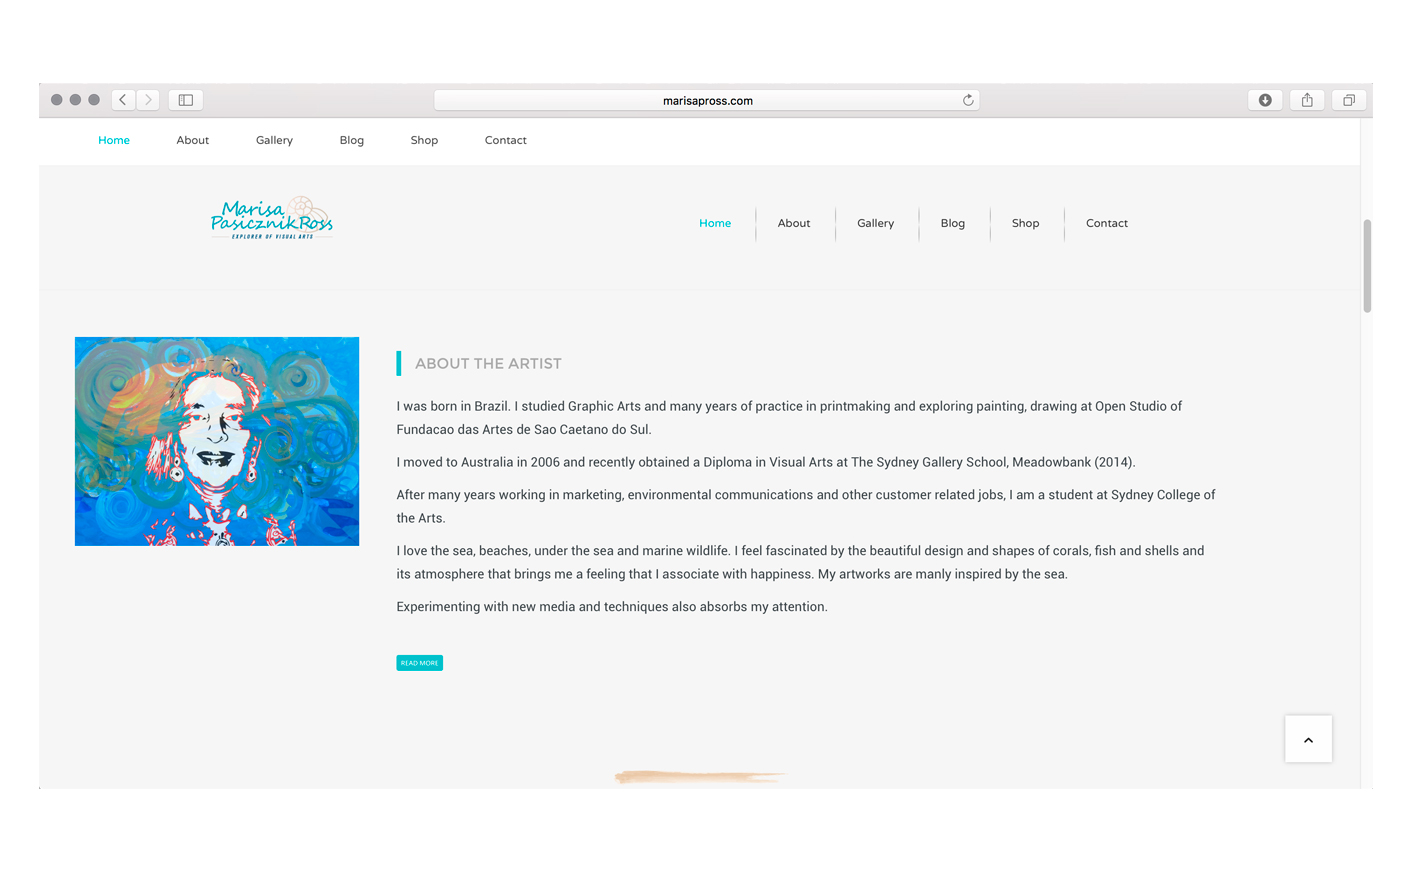 Website—About